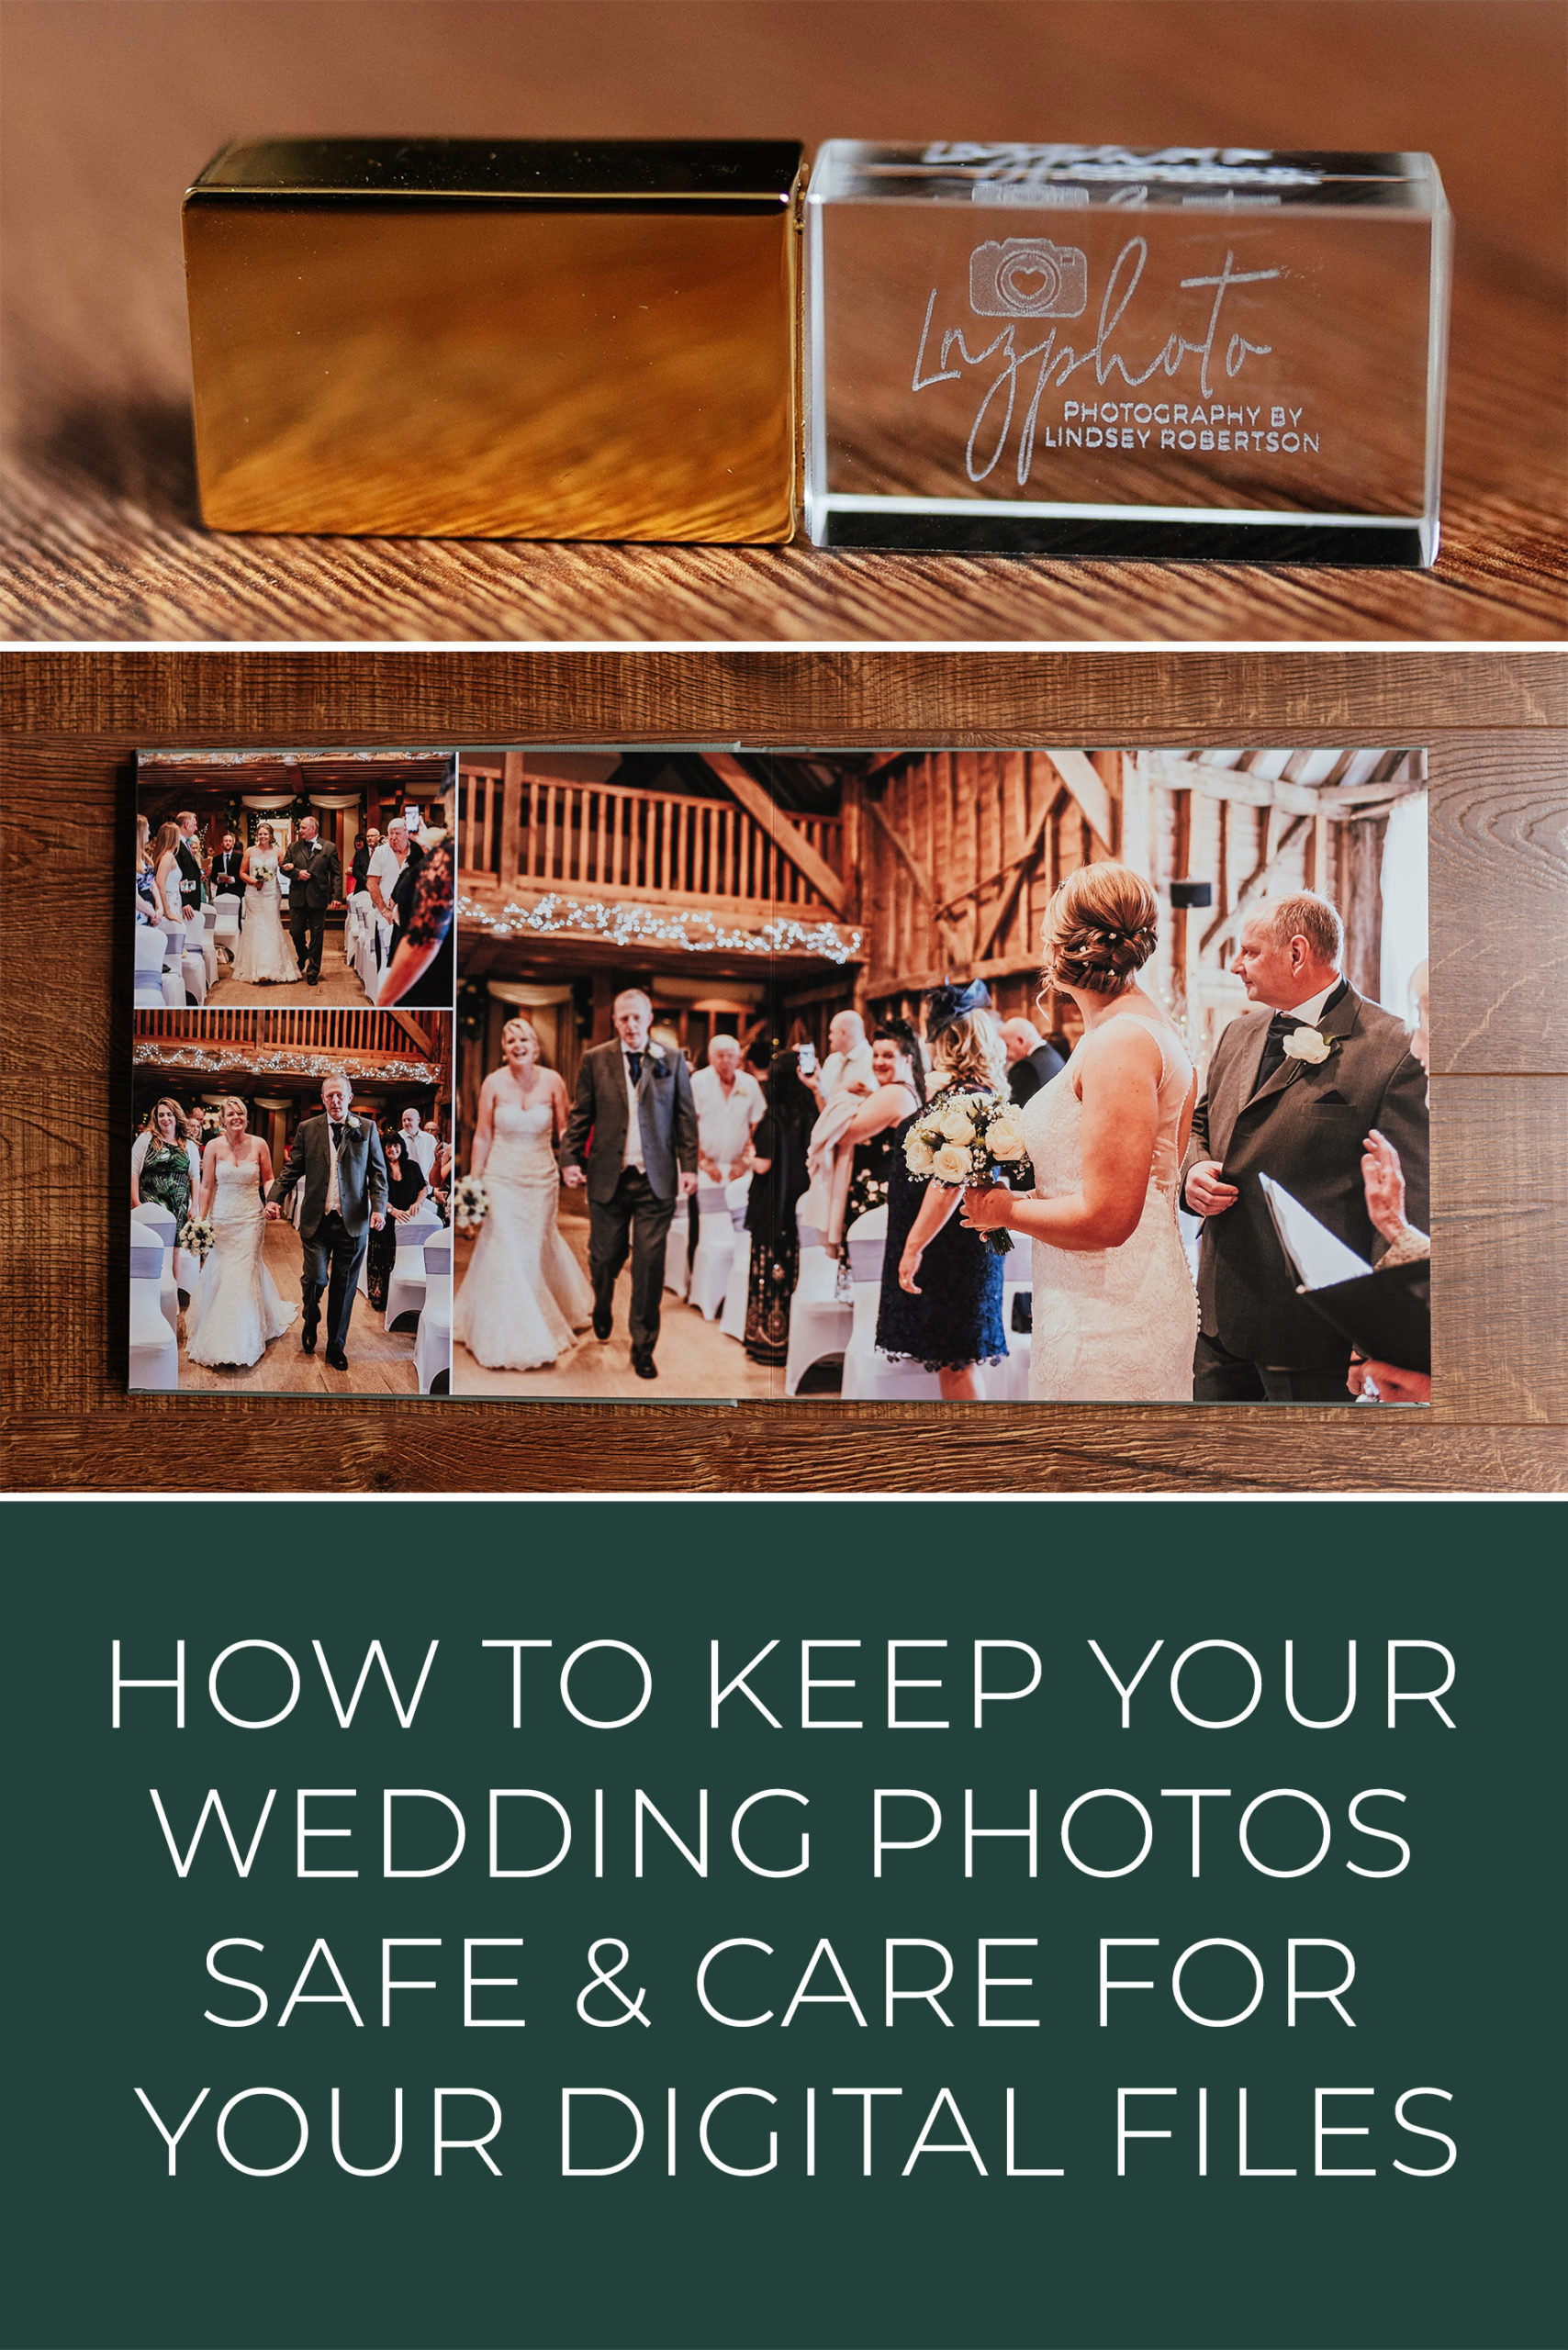 How to keep your wedding photos safe & care for your digital files